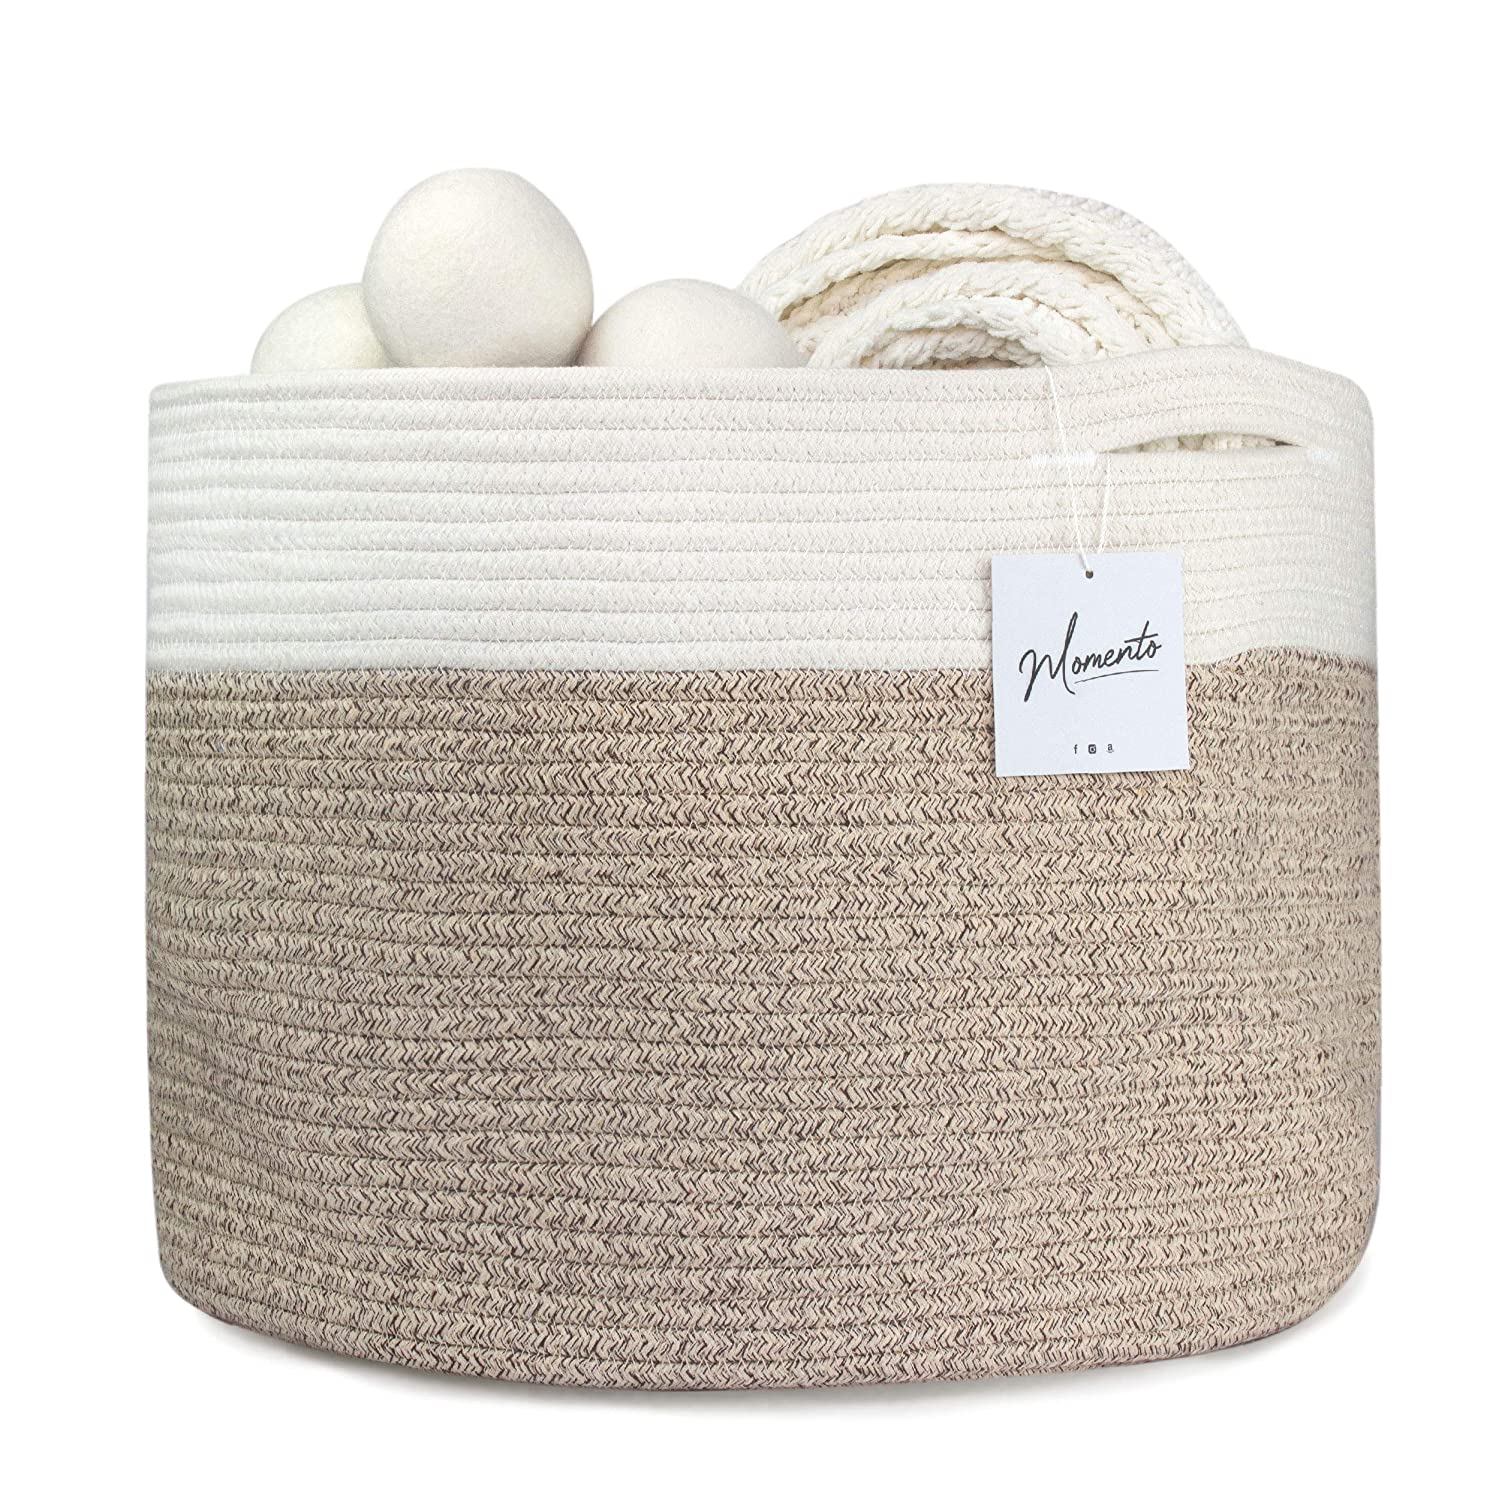 "Cotton Rope Storage Basket 20"" x 20"" x13"" - XX Large Rope Basket - Blanket Storage - Pillow Basket - Rope Laundry Basket - Large Blanket Basket - Basket for Toys - Towel Basket 